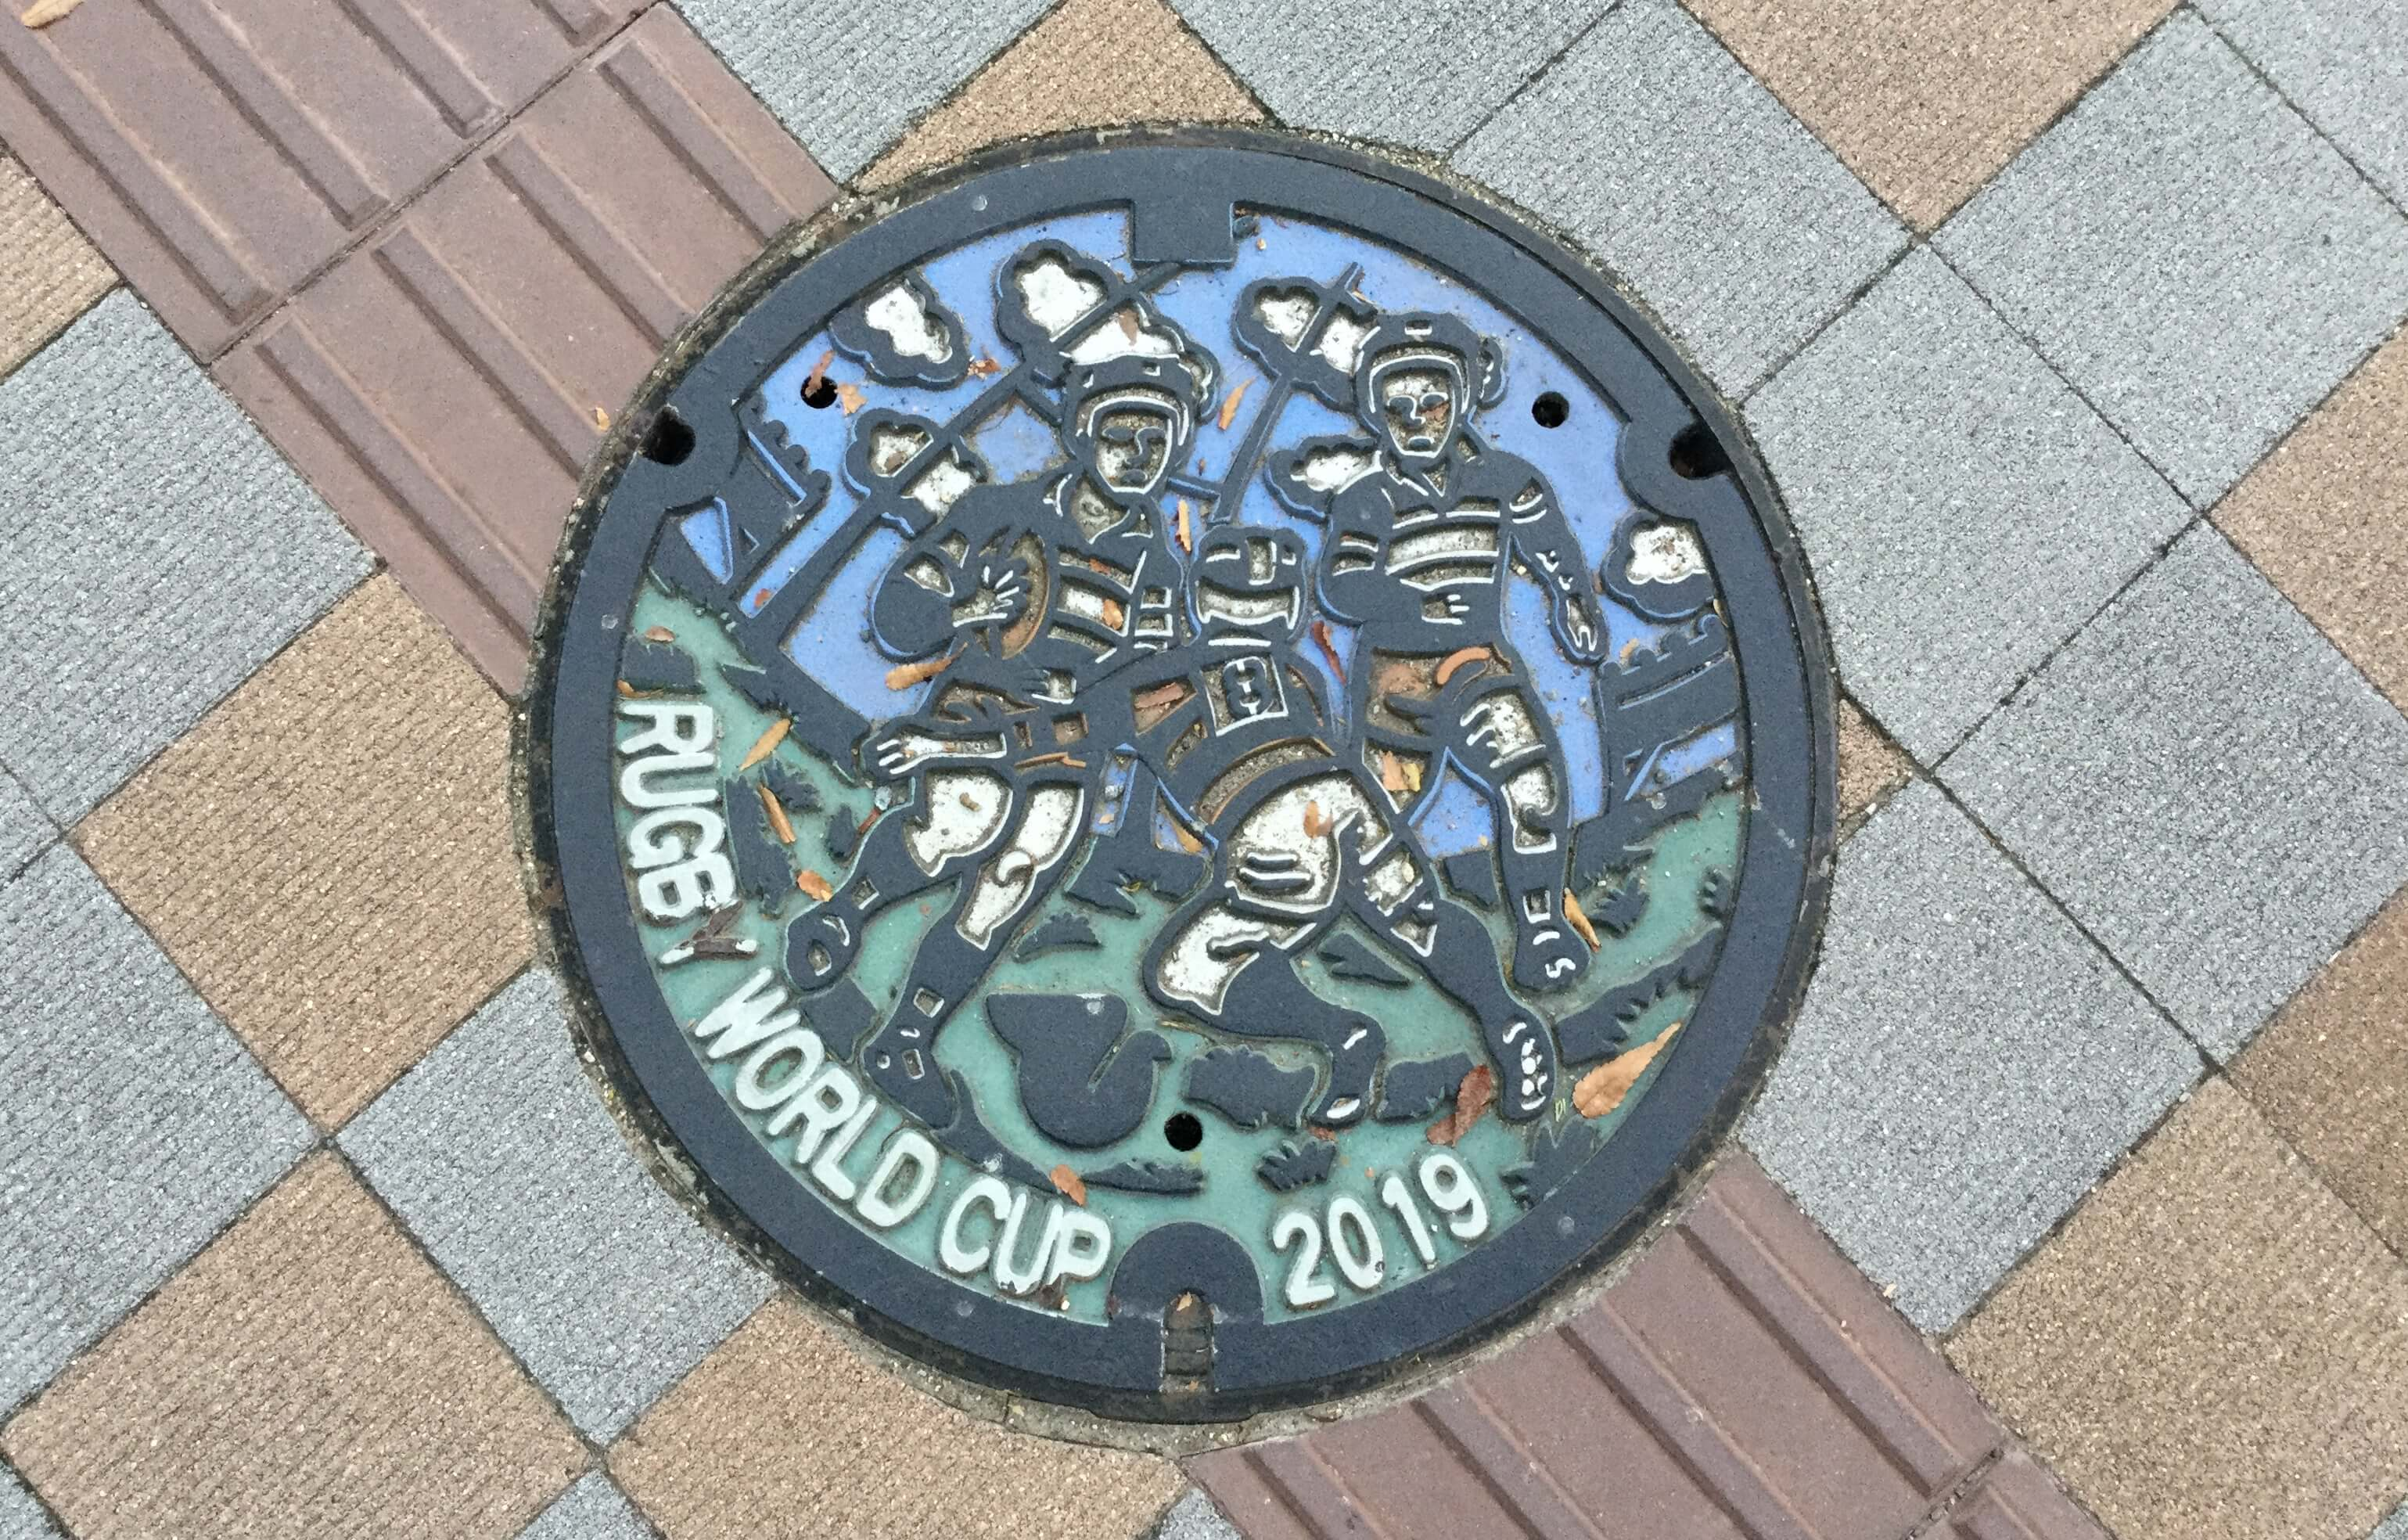 Rugby World Cup manhole cover in Higashi Osaka